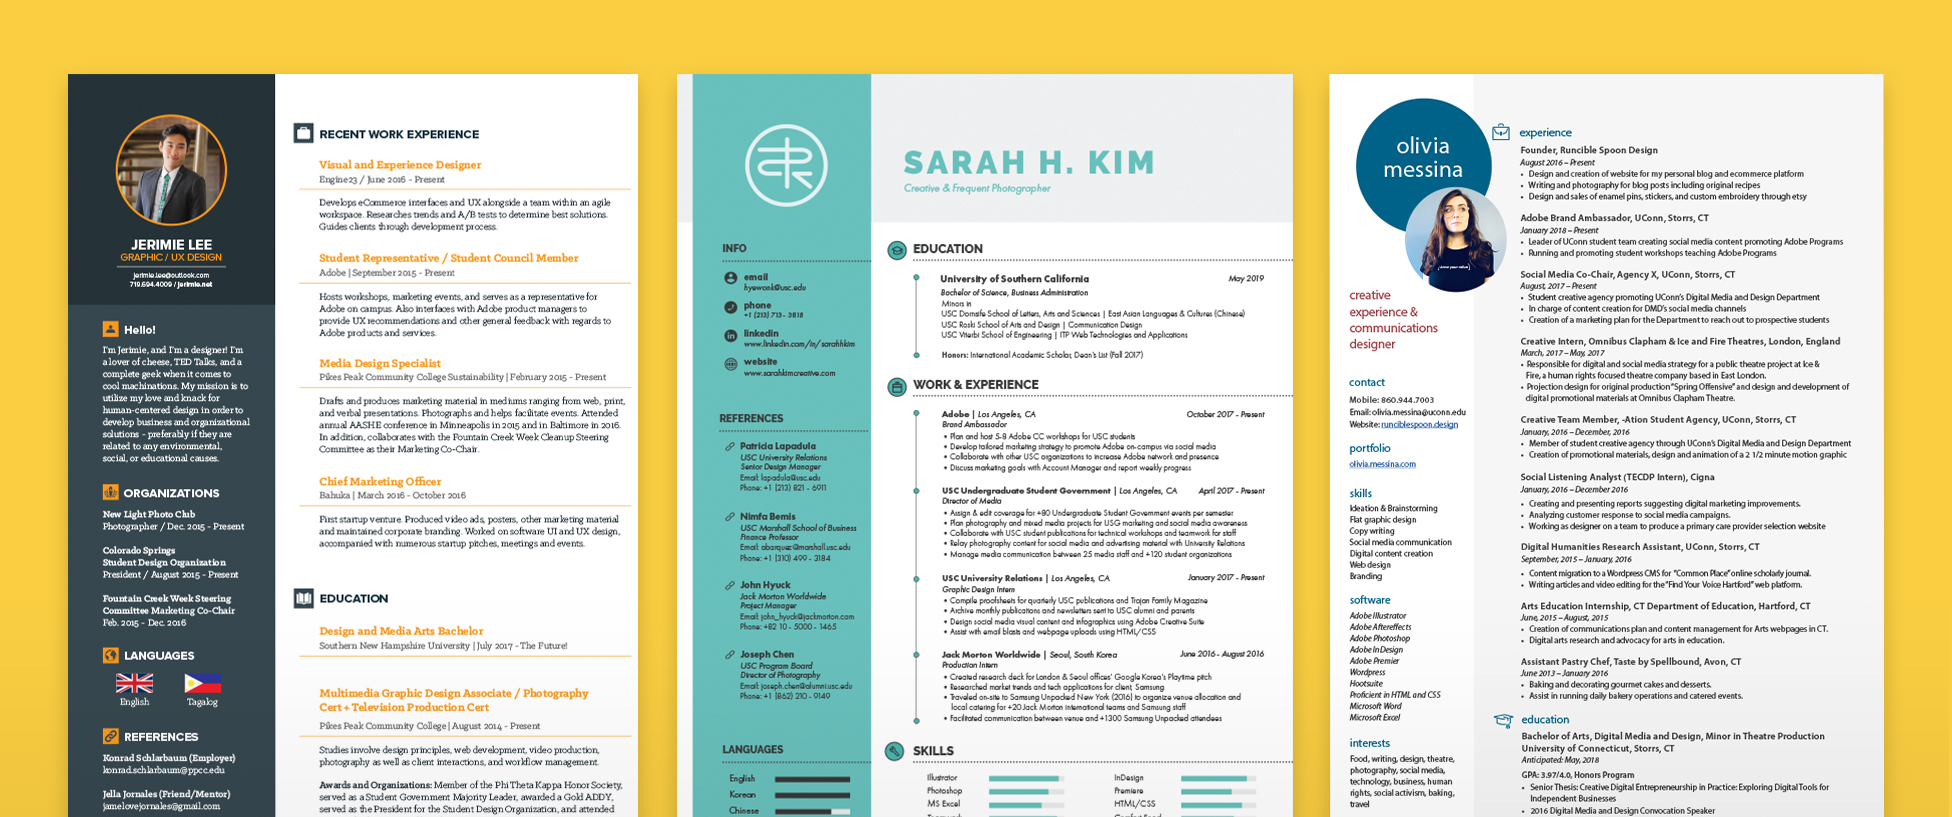 Resume Templates That Get the Job Done | Make it.